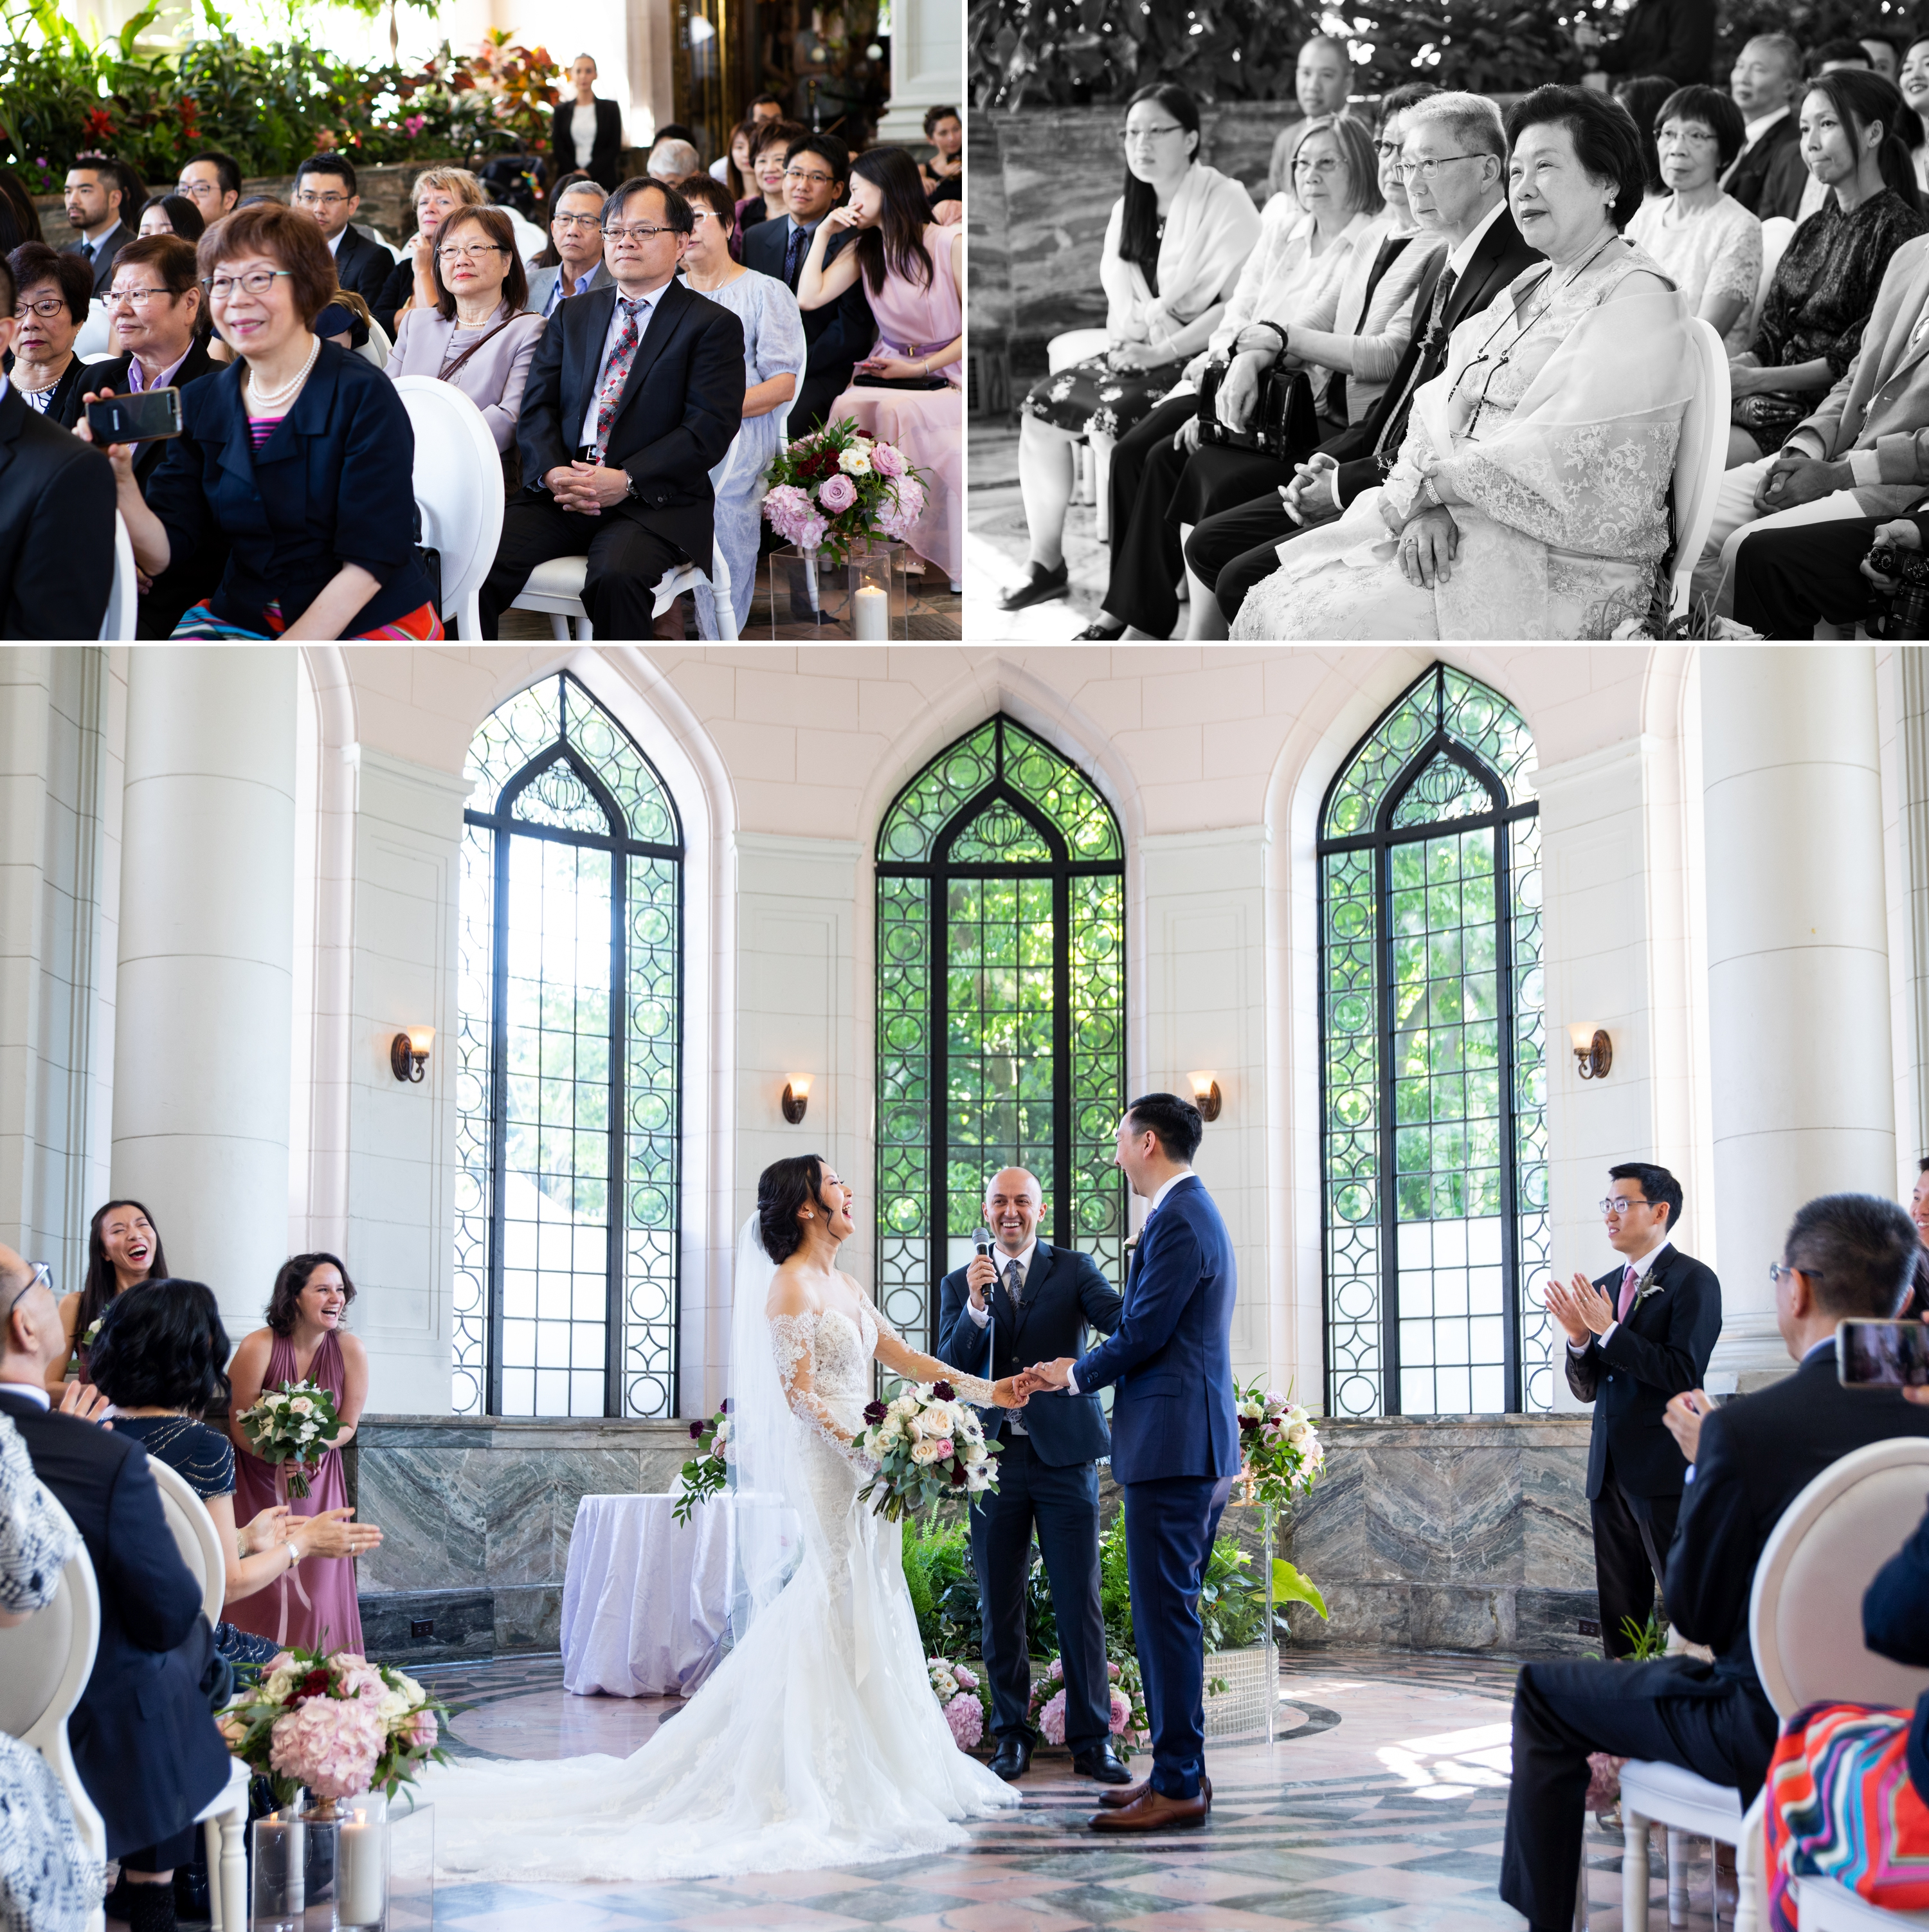 Ceremony Guests Candid Toronto Casa Loma Four Seasons Chinese Wedding Zsuzsi Pal Photography Cindy Brian